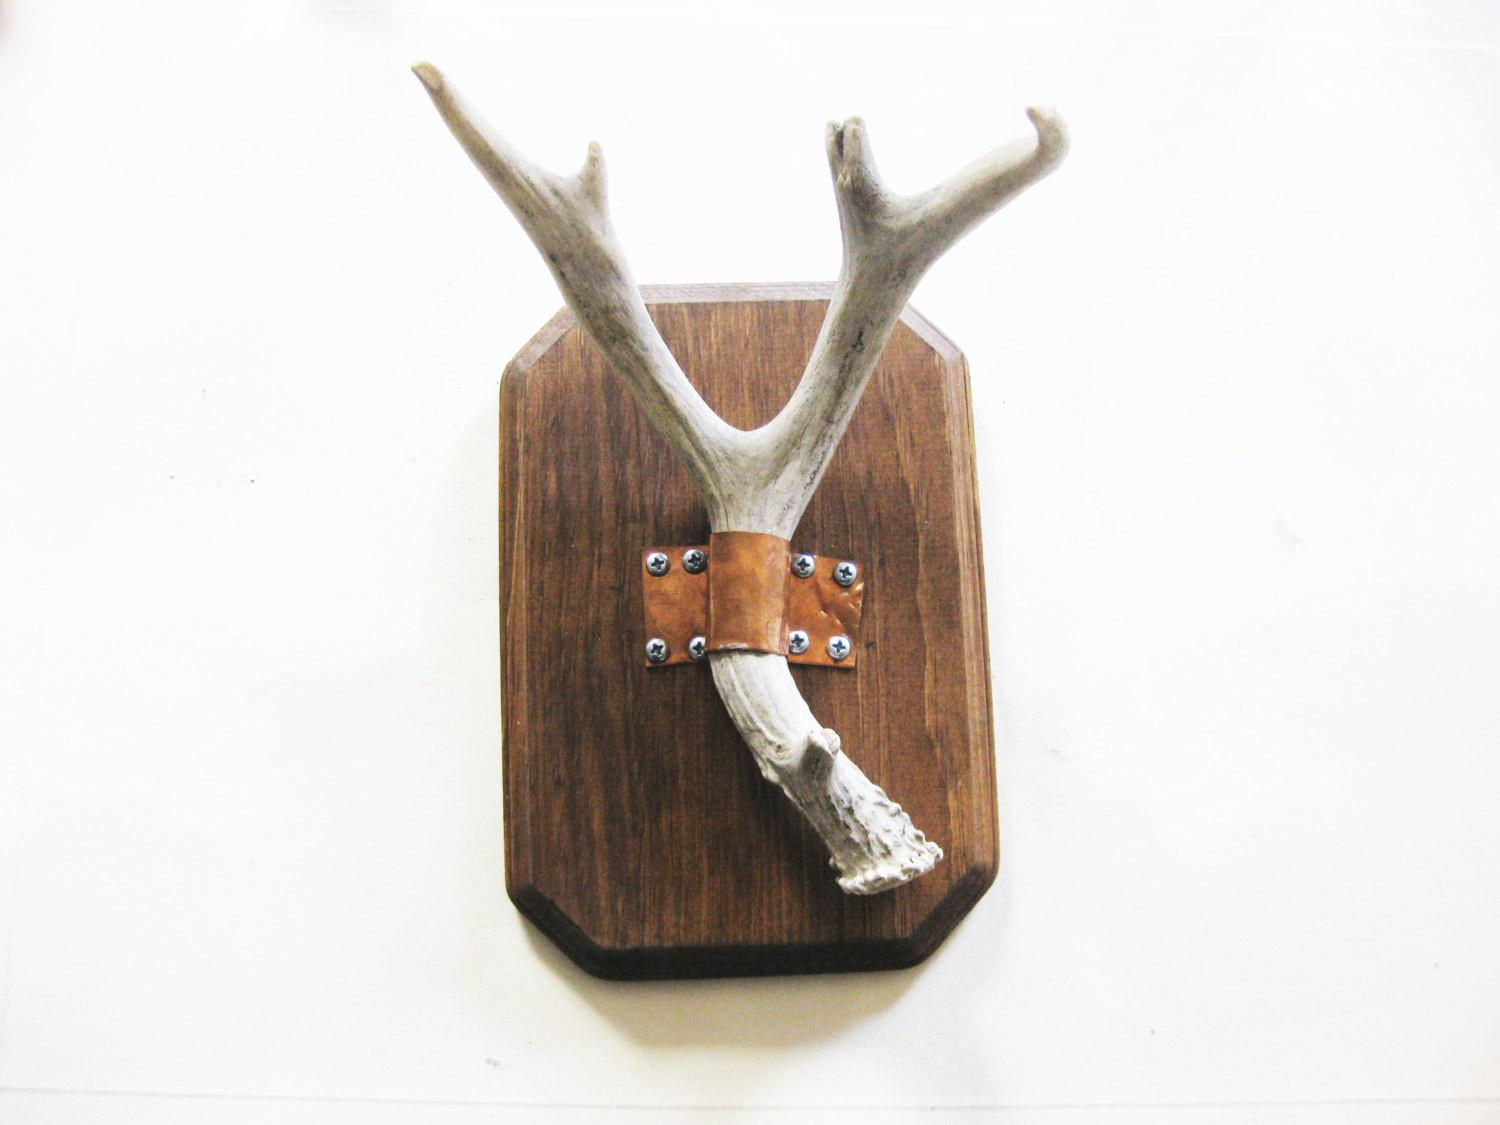 Deer Antler Wall Mounted Jewelry Holder Blackhorseshogun